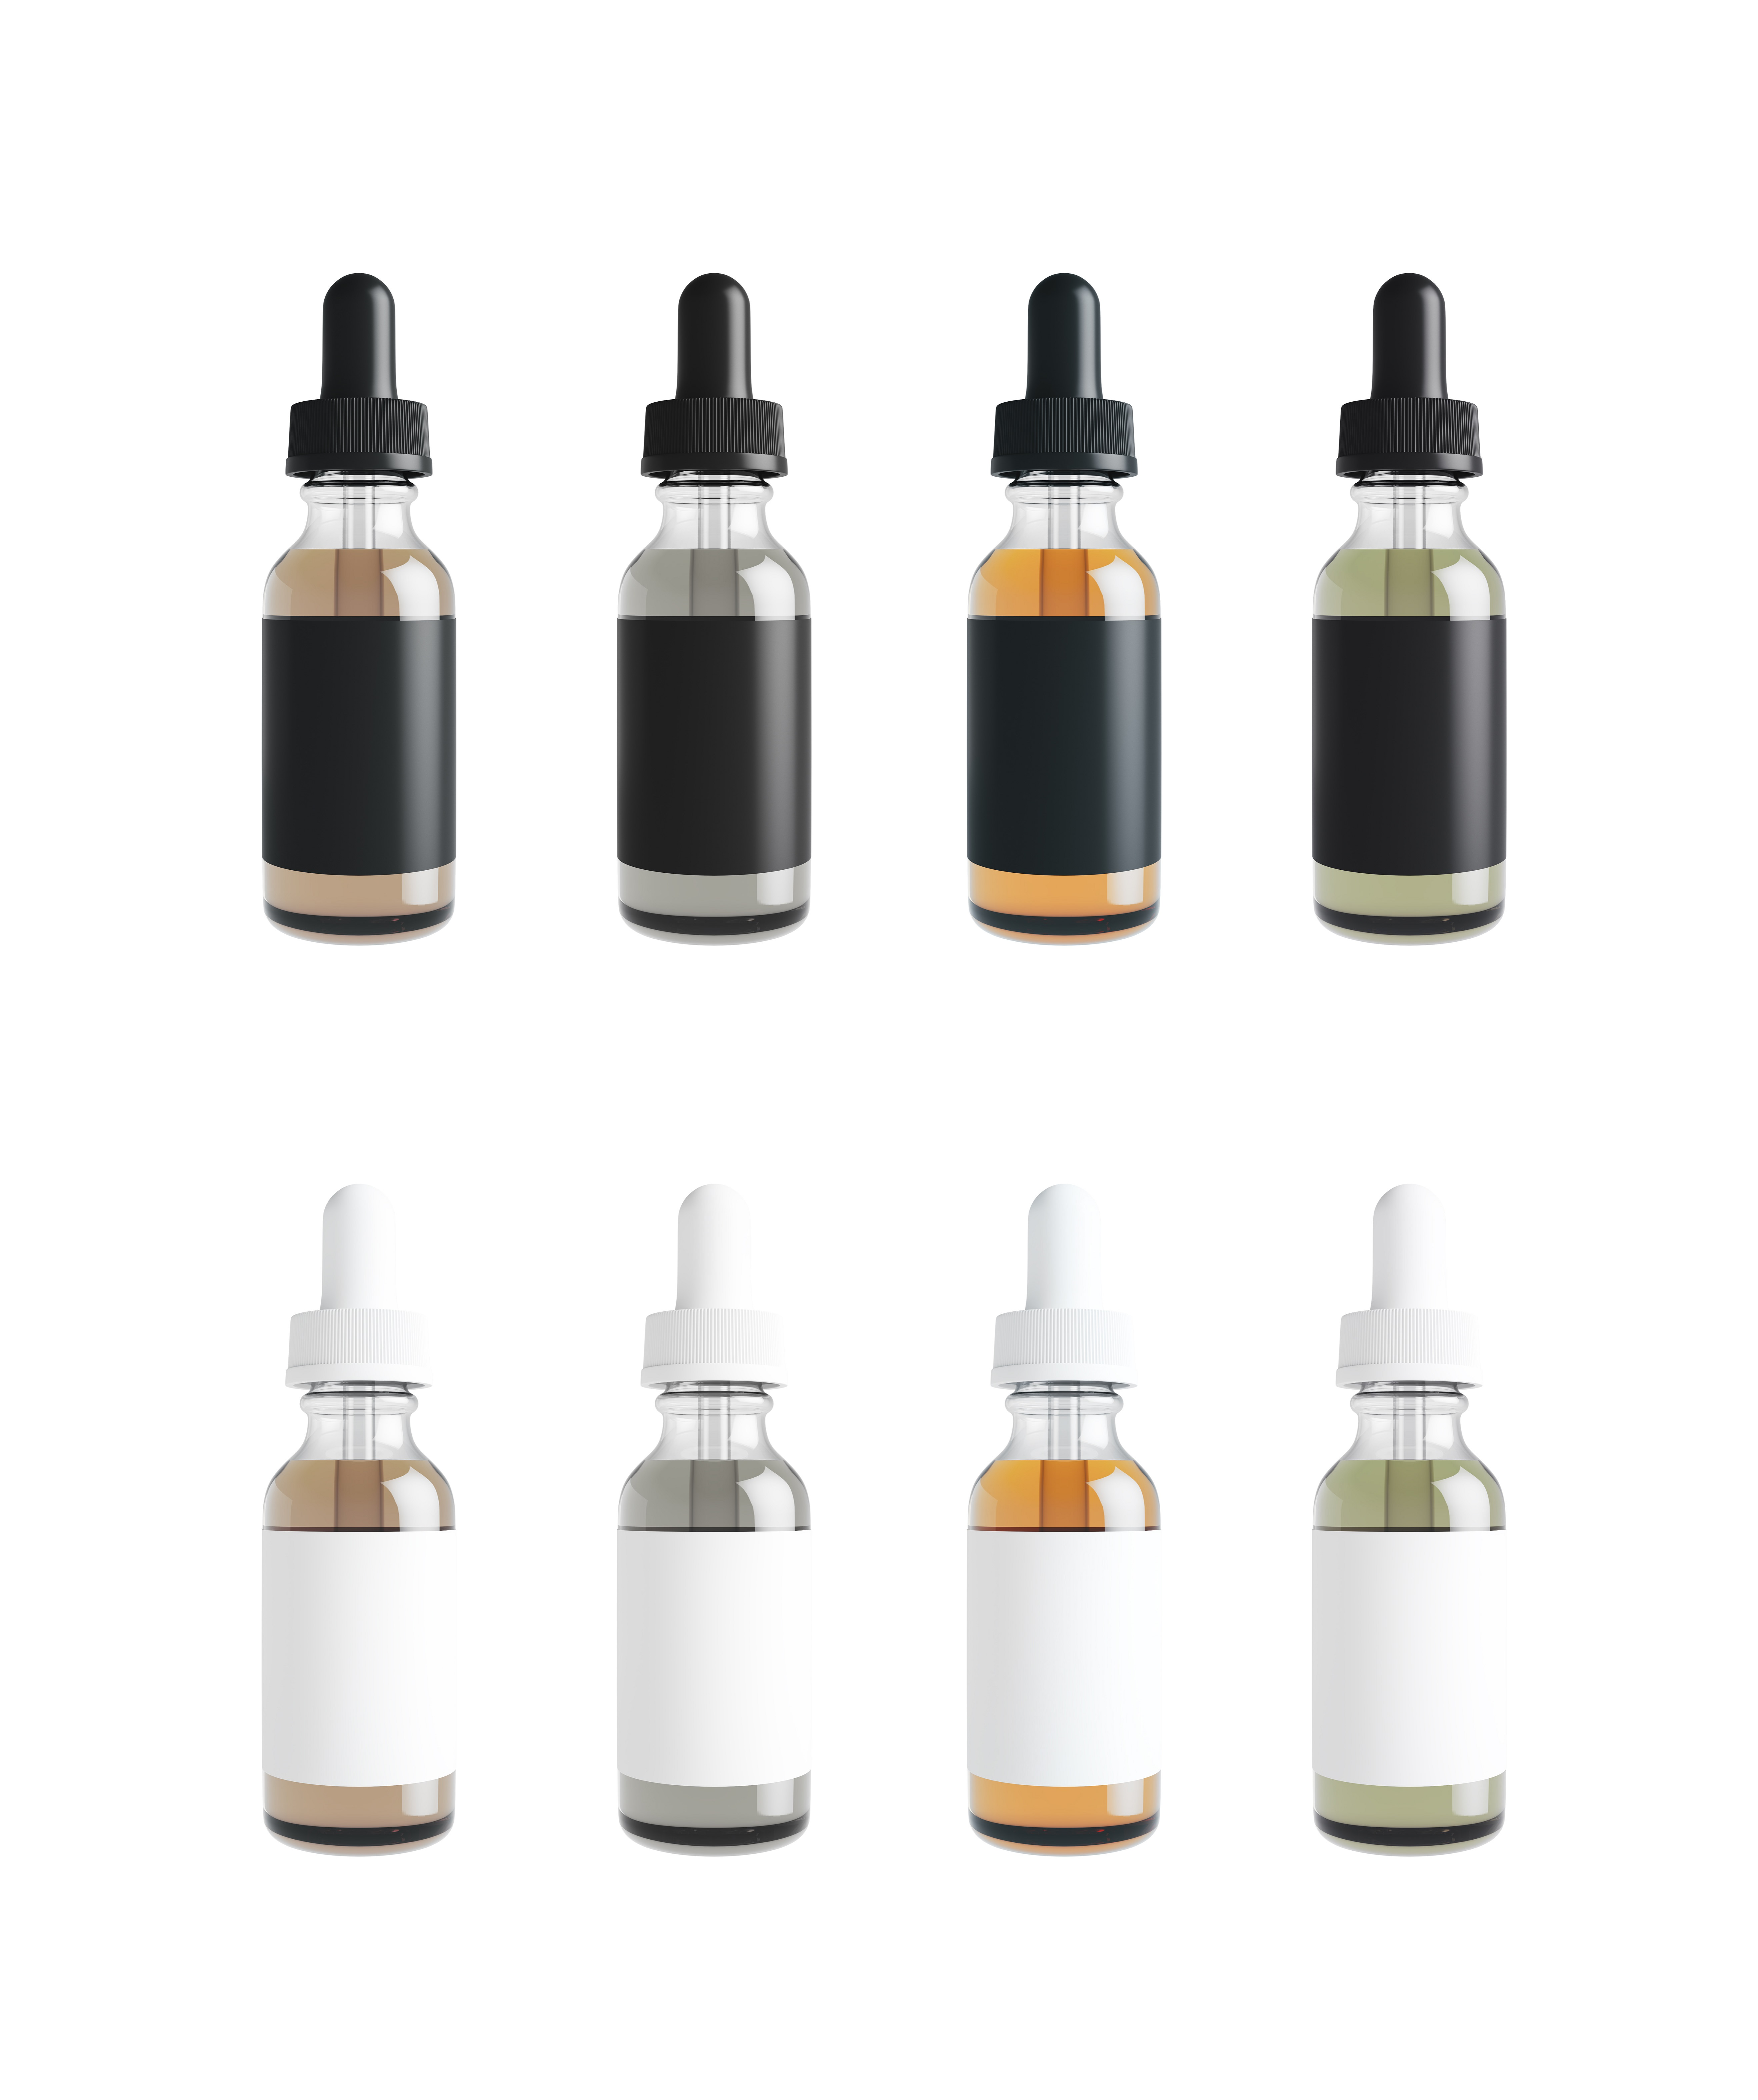 Liquid Nicotine - is it an Antidote to Smoking Cigarettes